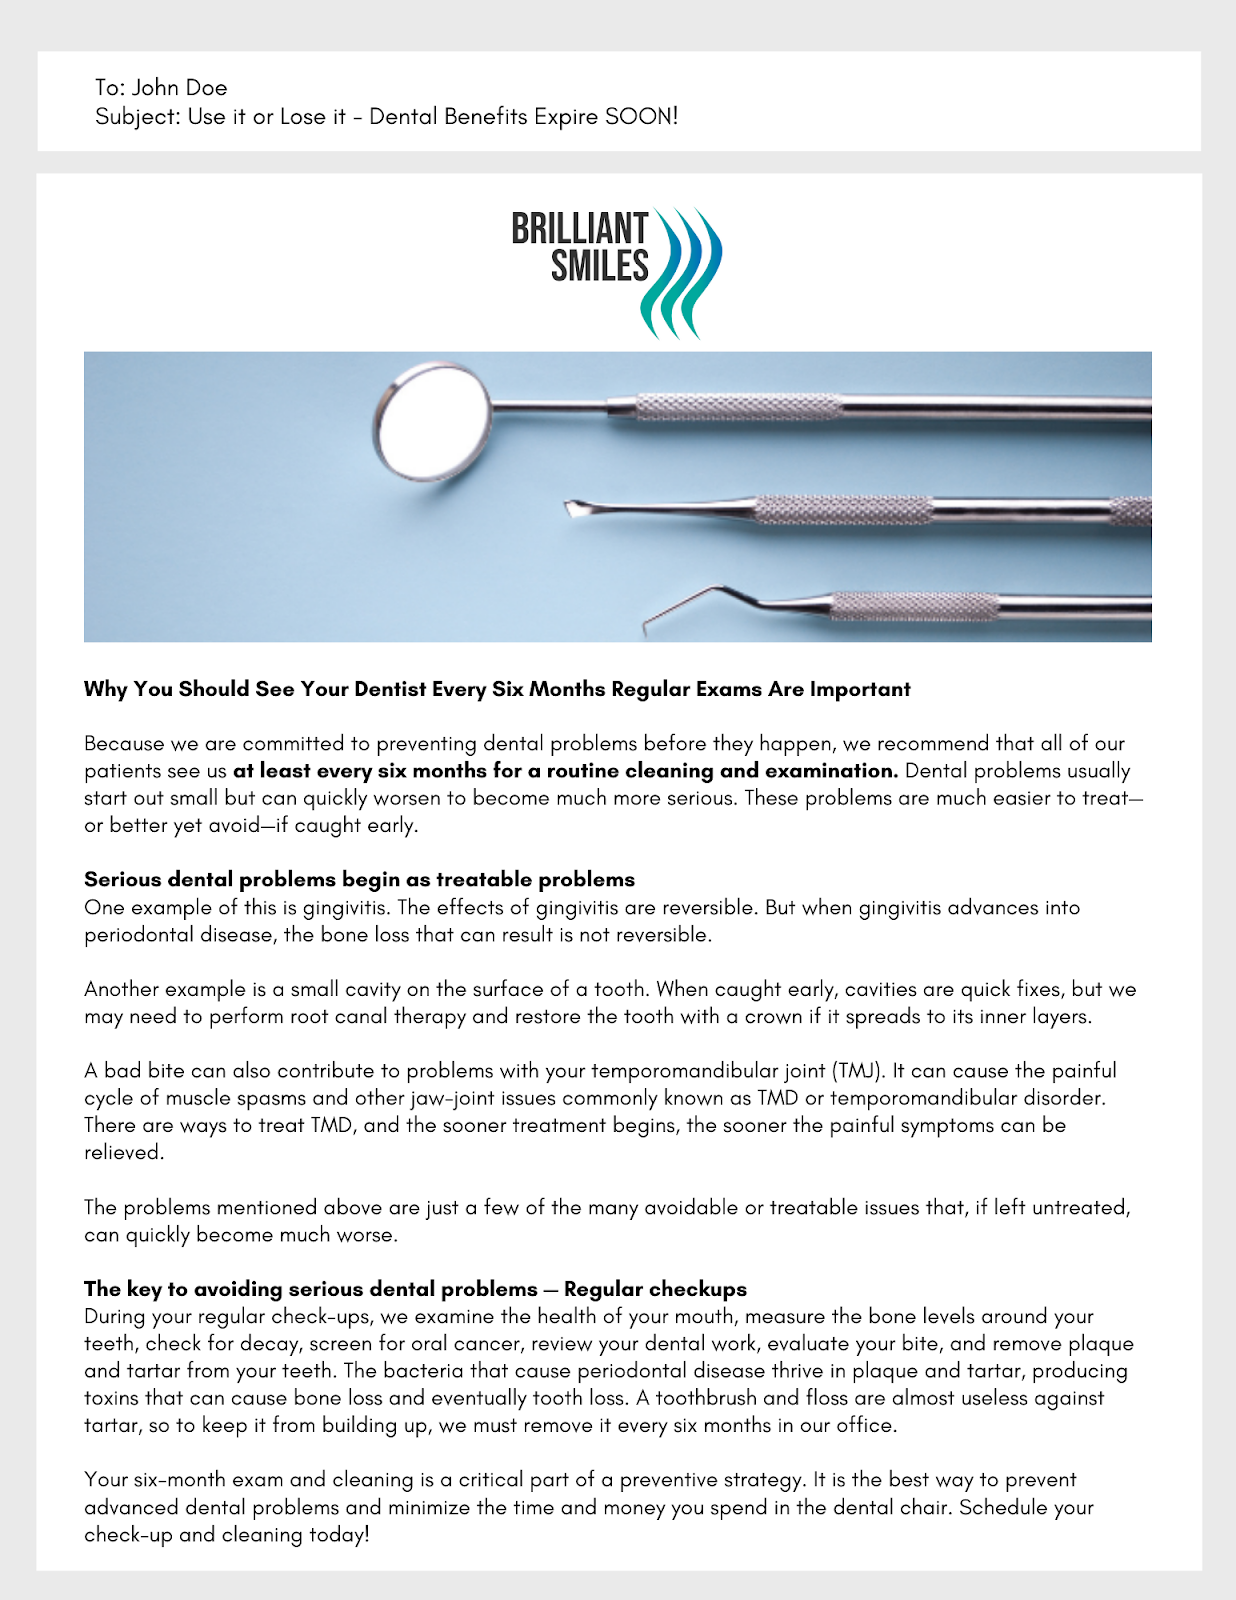 Sample patient education email